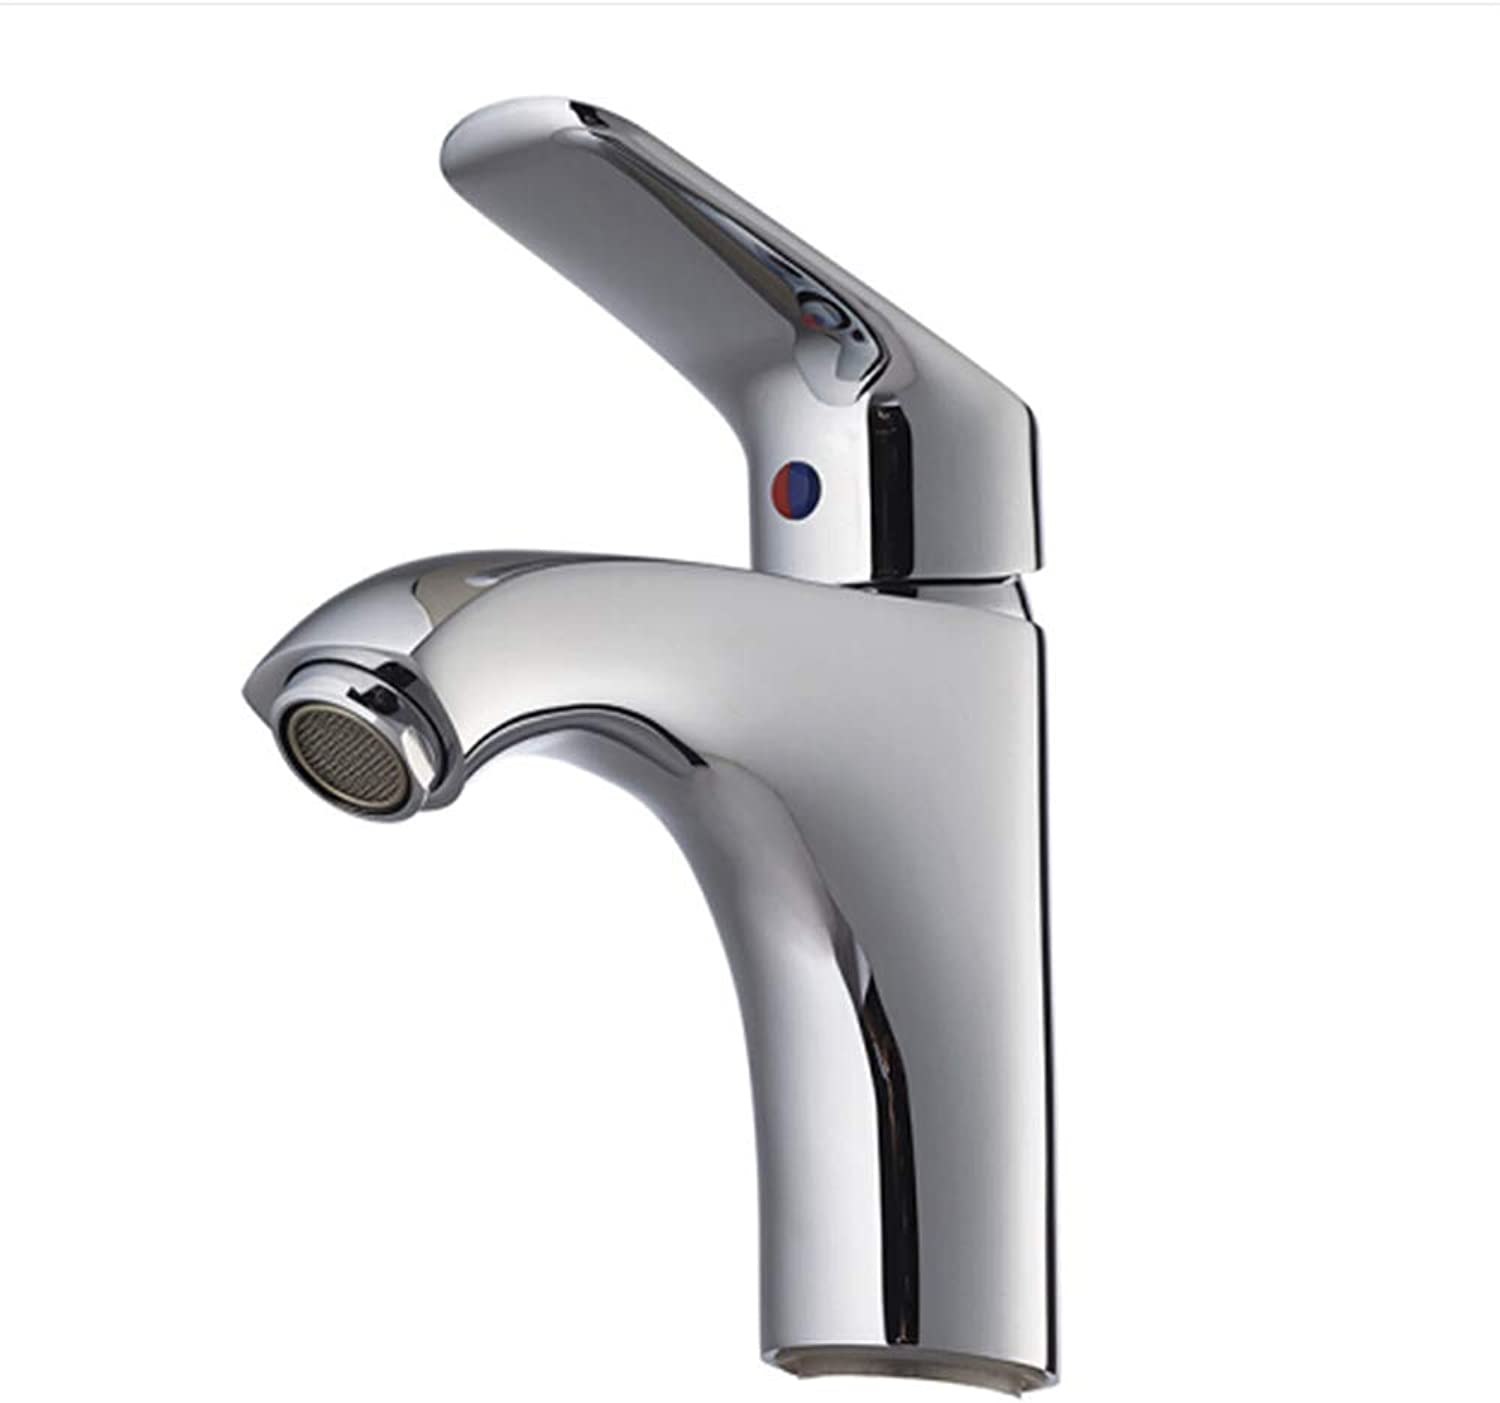 Kitchen Faucet Tapstainless Steelkitchen Faucet Profull Bath Chrome Plating for Faucet Cold and Hot Basin Faucet